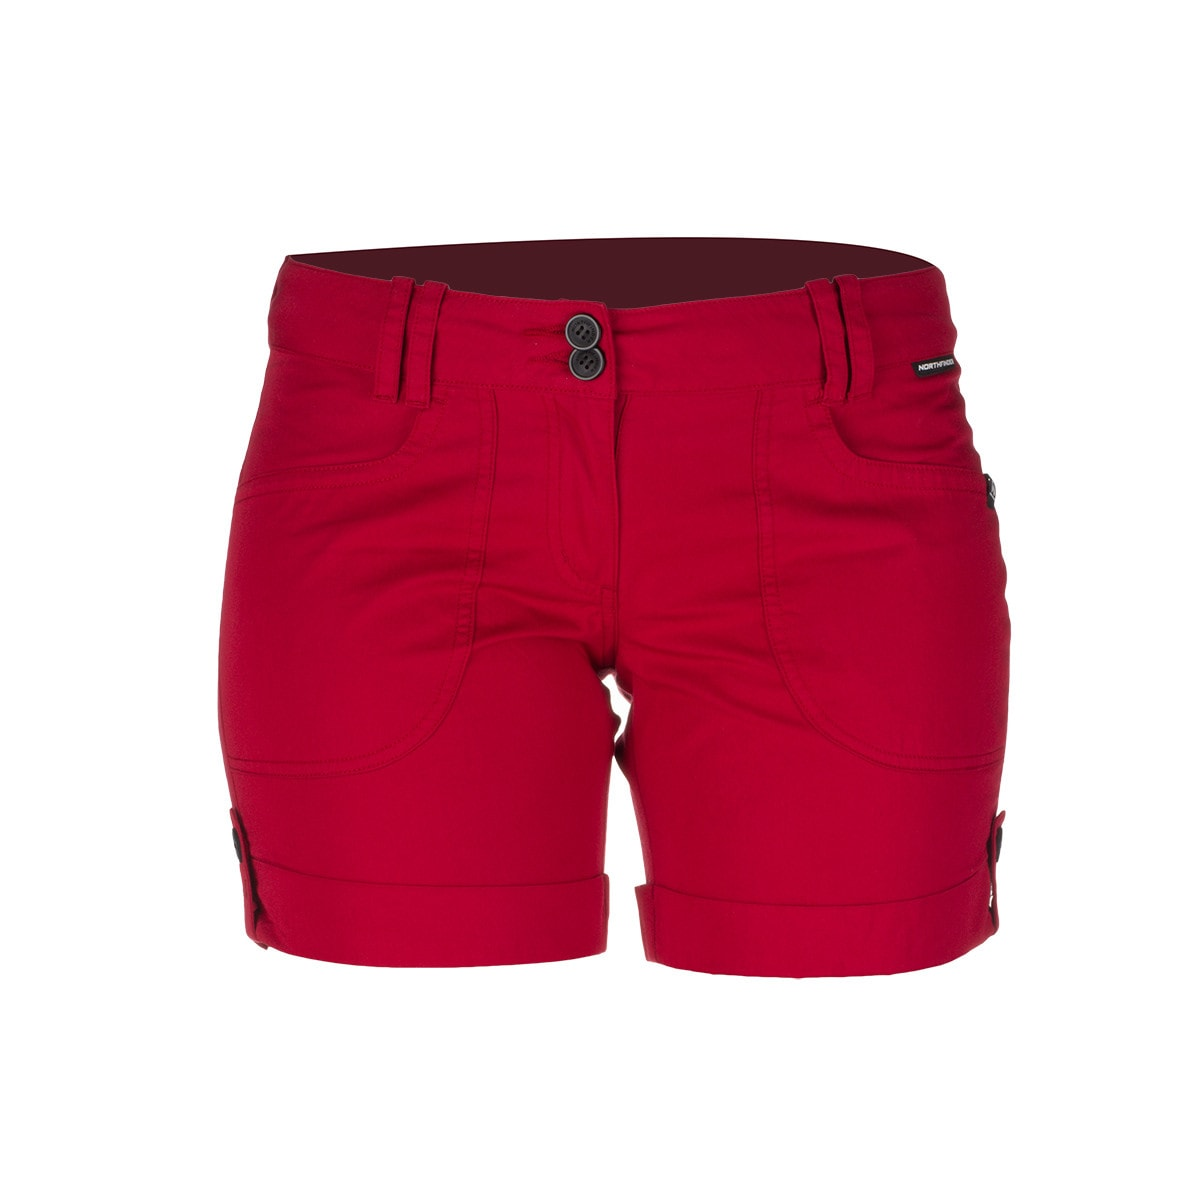 Women's shorts NORTHFINDER GABICA